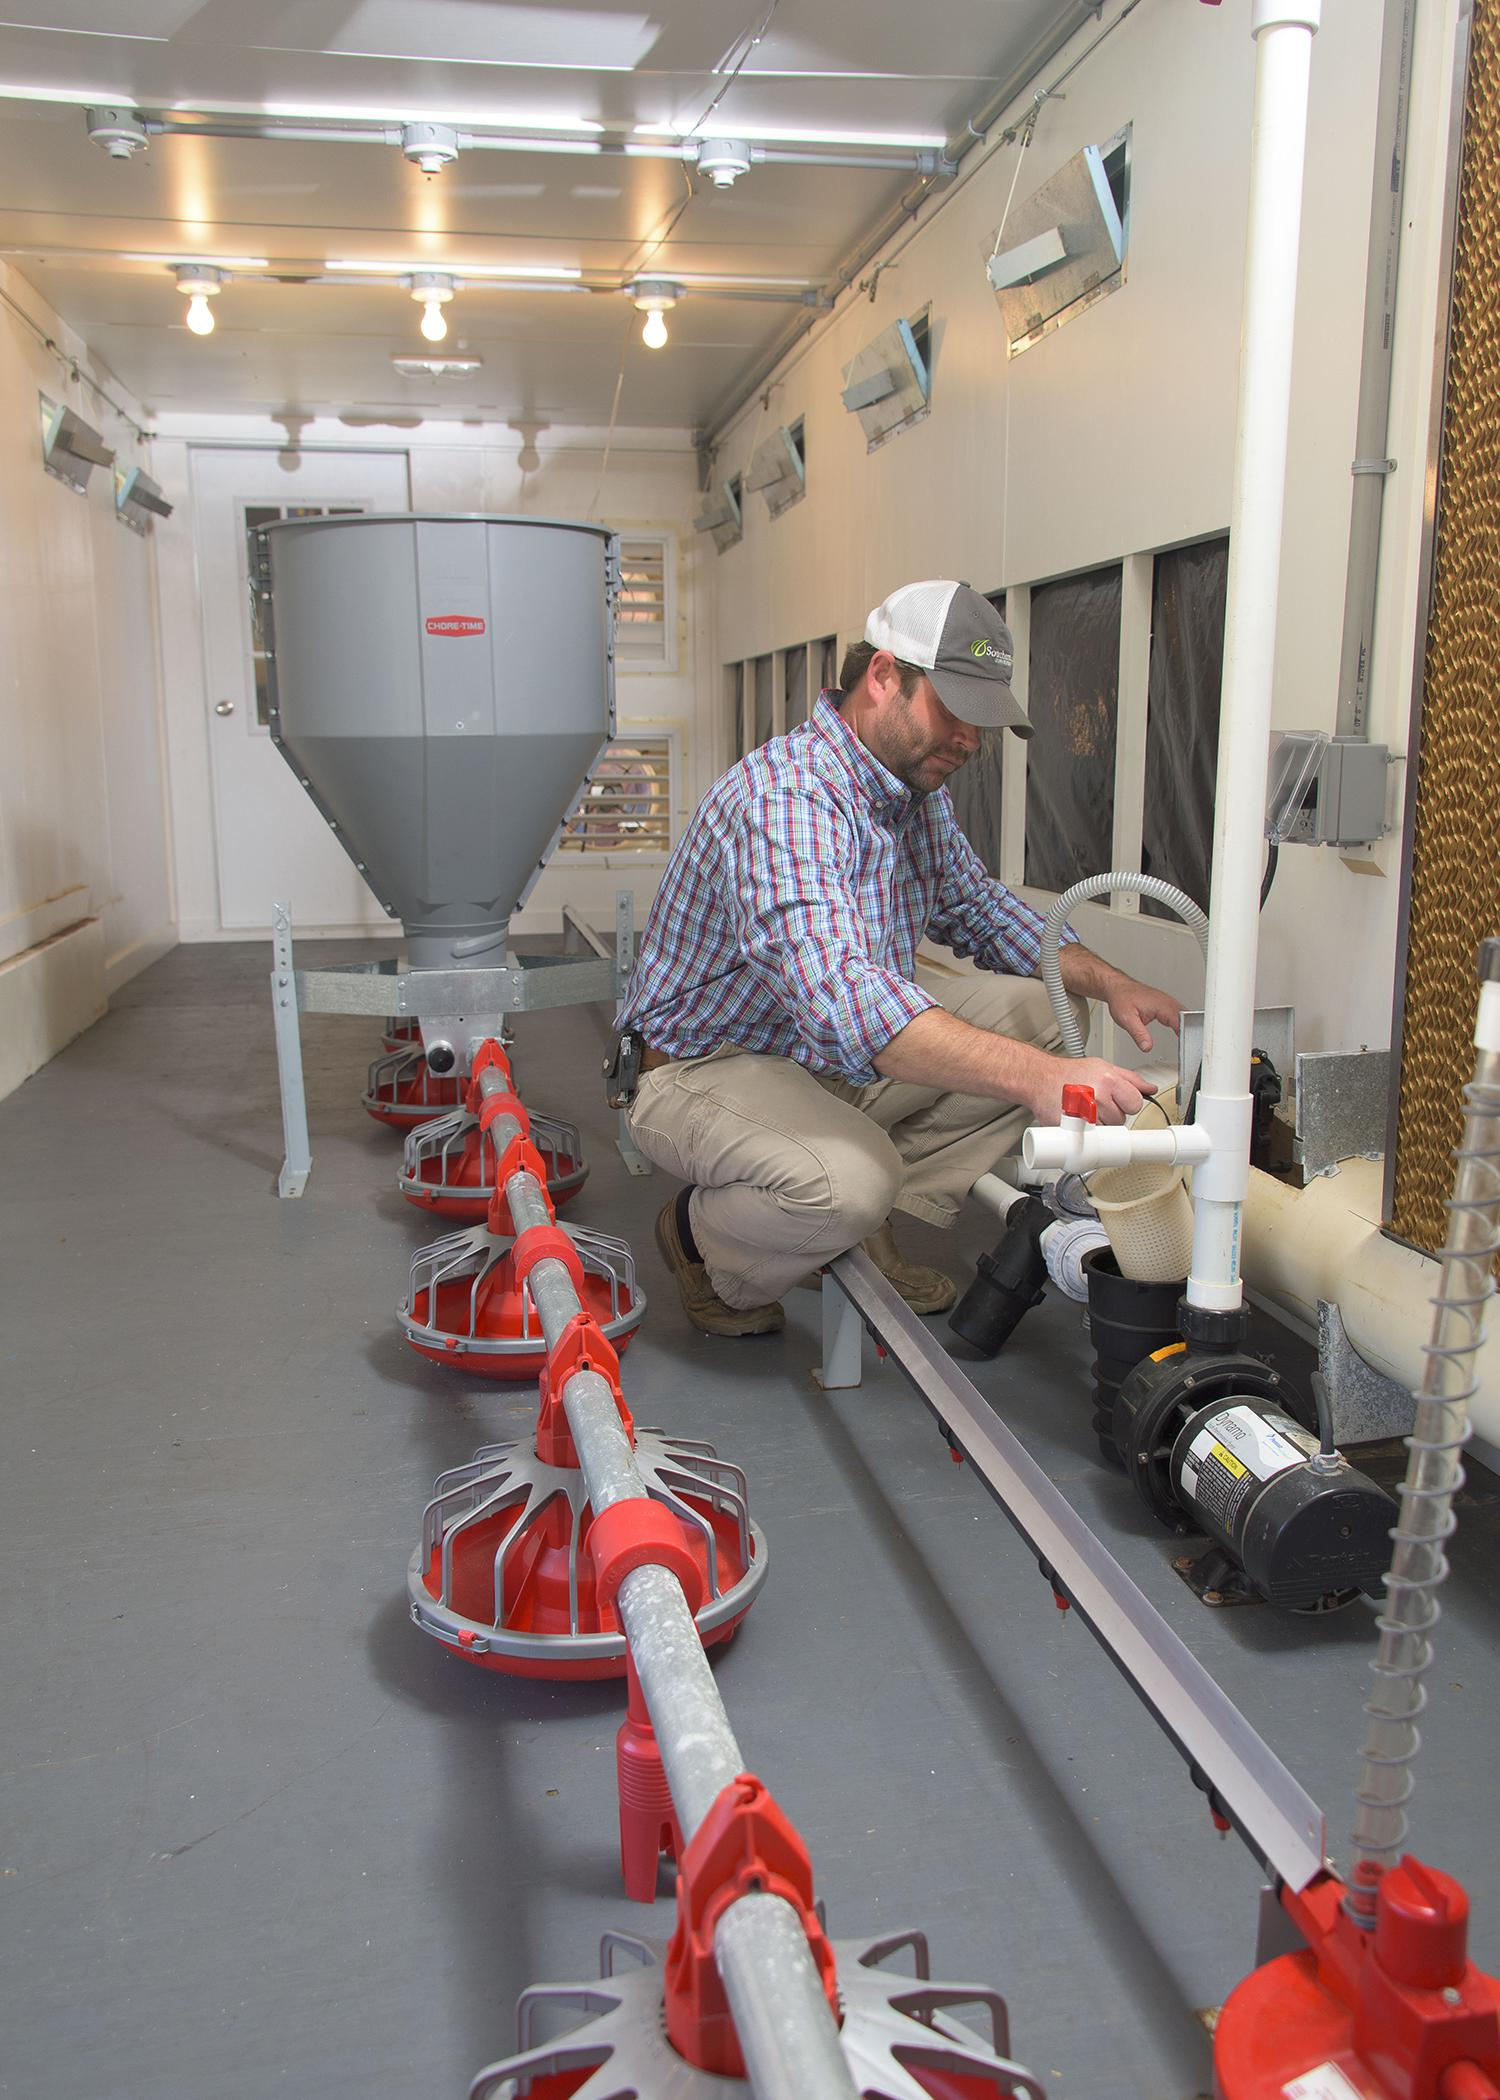 Mississippi State University research associate Daniel Chesser tests a new pumping unit inside the Mobile Environmental and Energy Lab at Mississippi State University Oct. 29, 2015. (Photo by MSU Extension/Kevin Hudson)